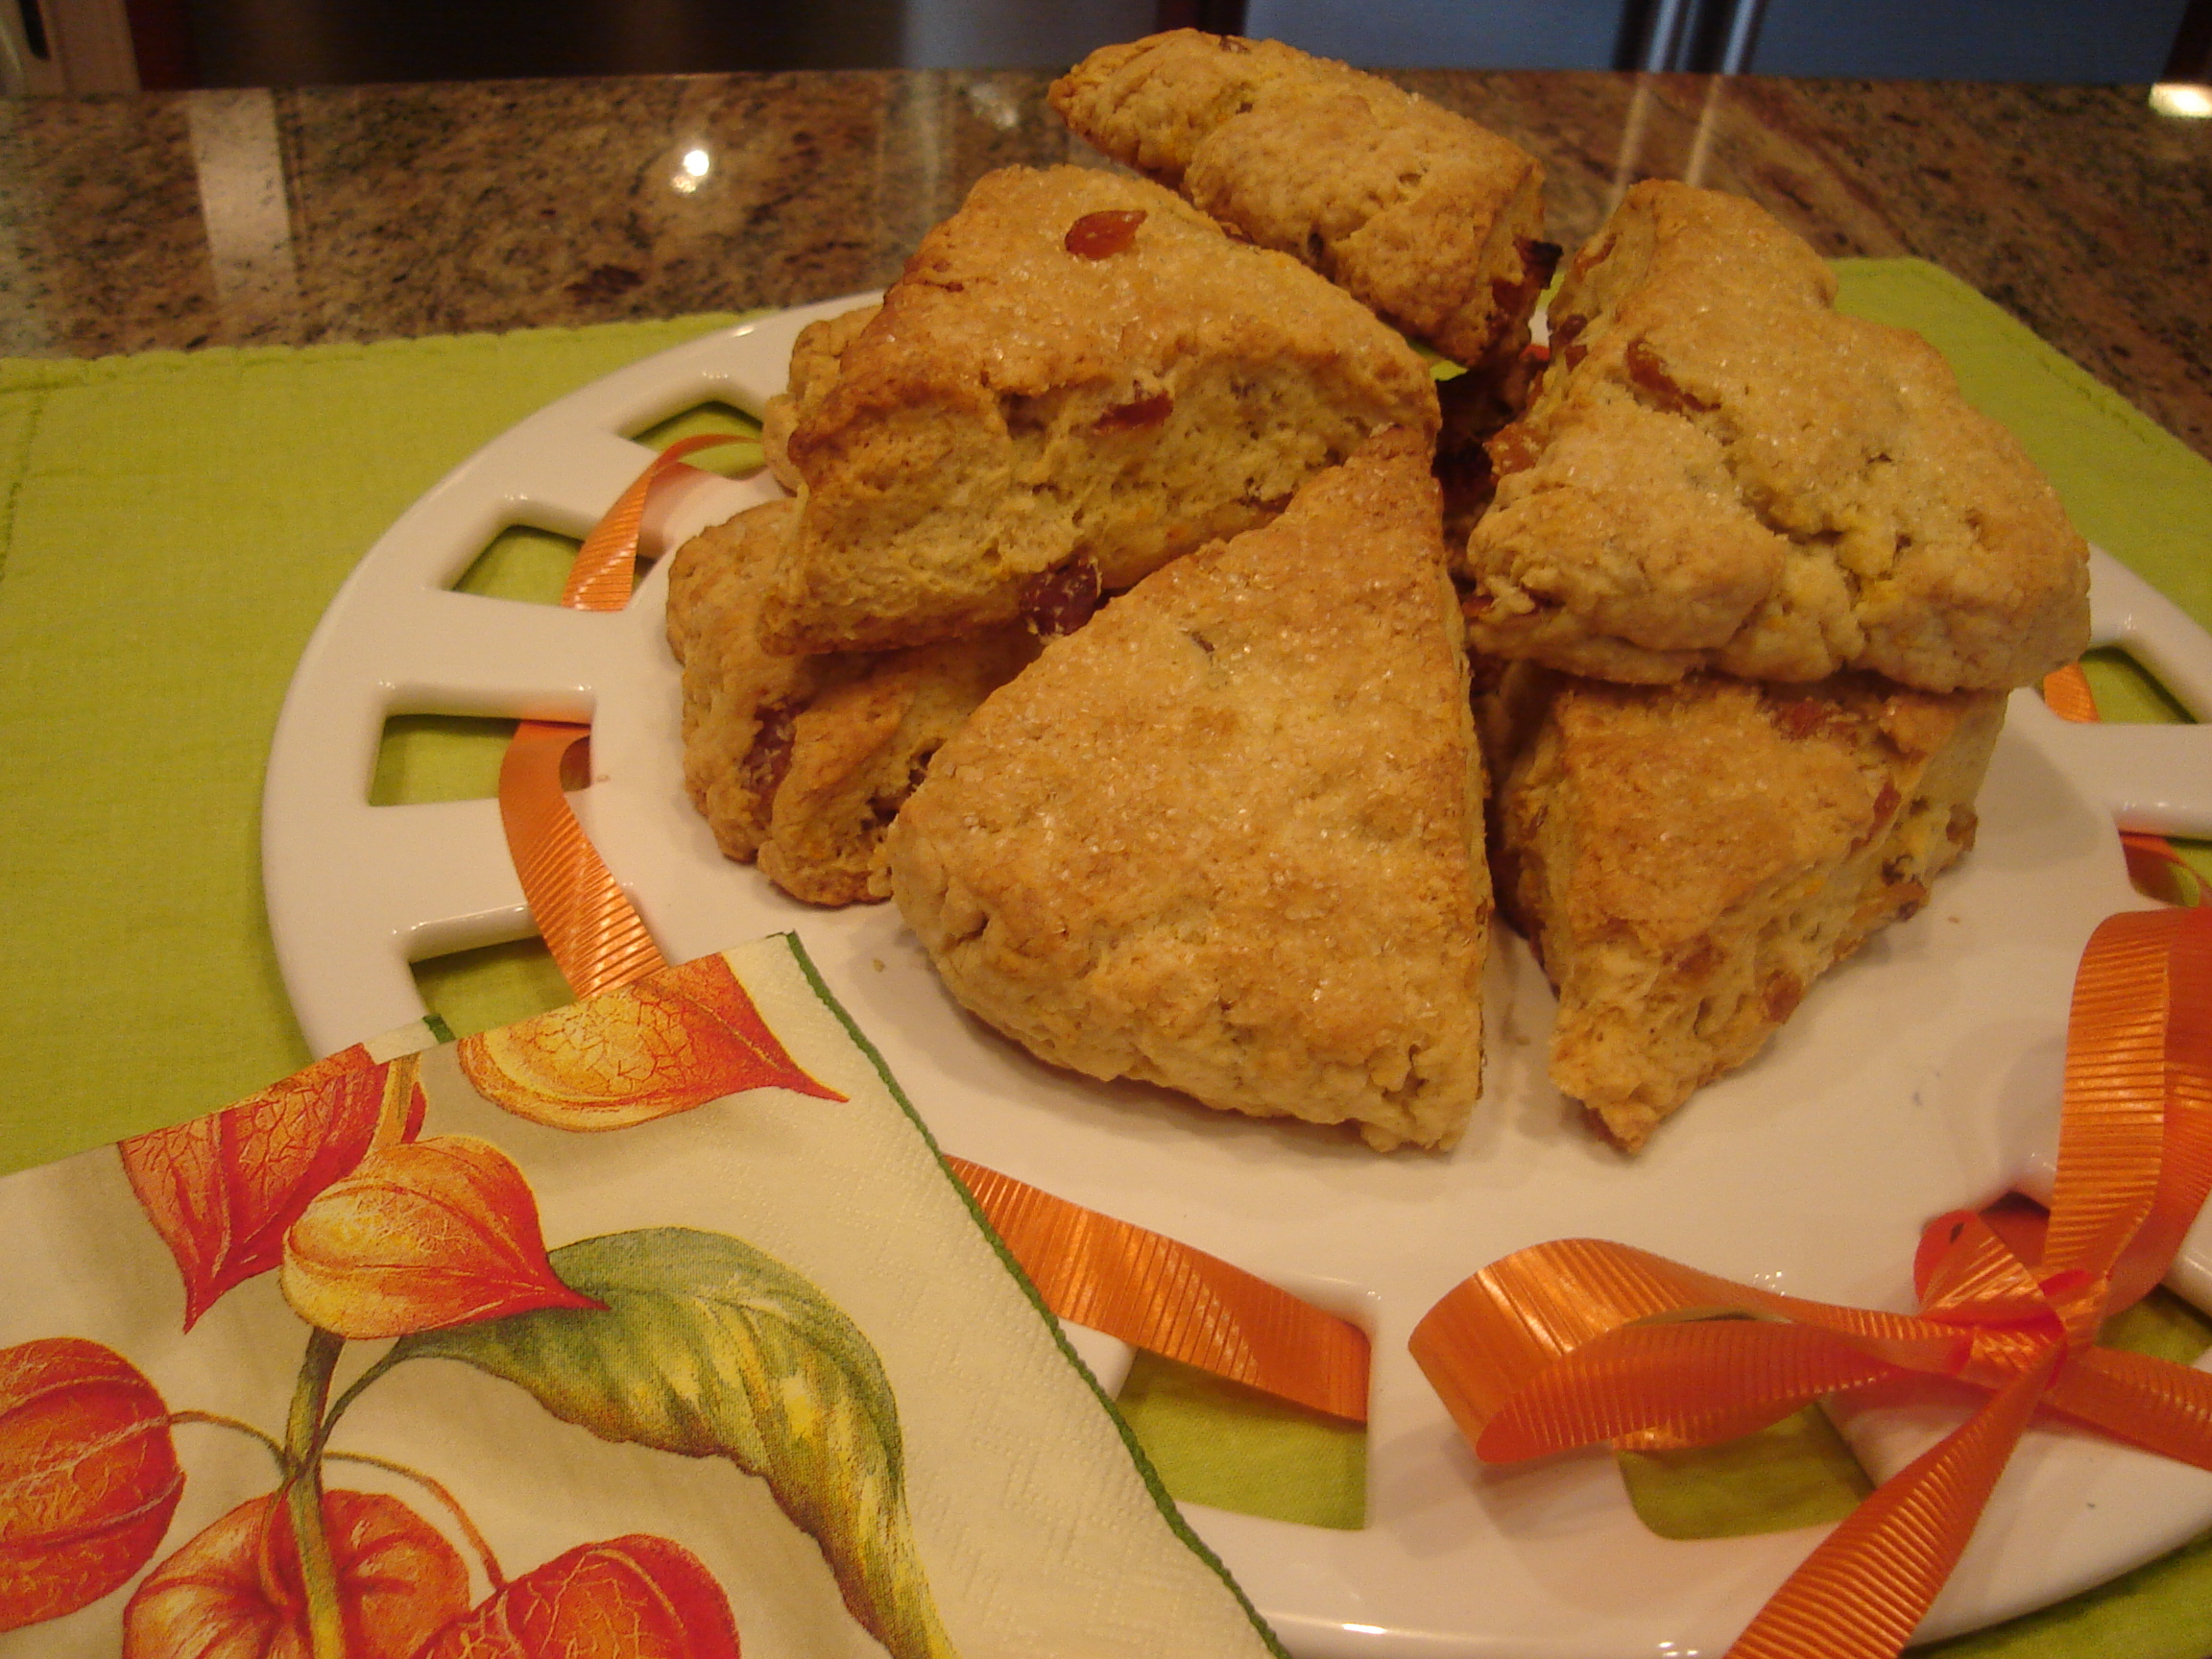 Scones with Golden Raisins II